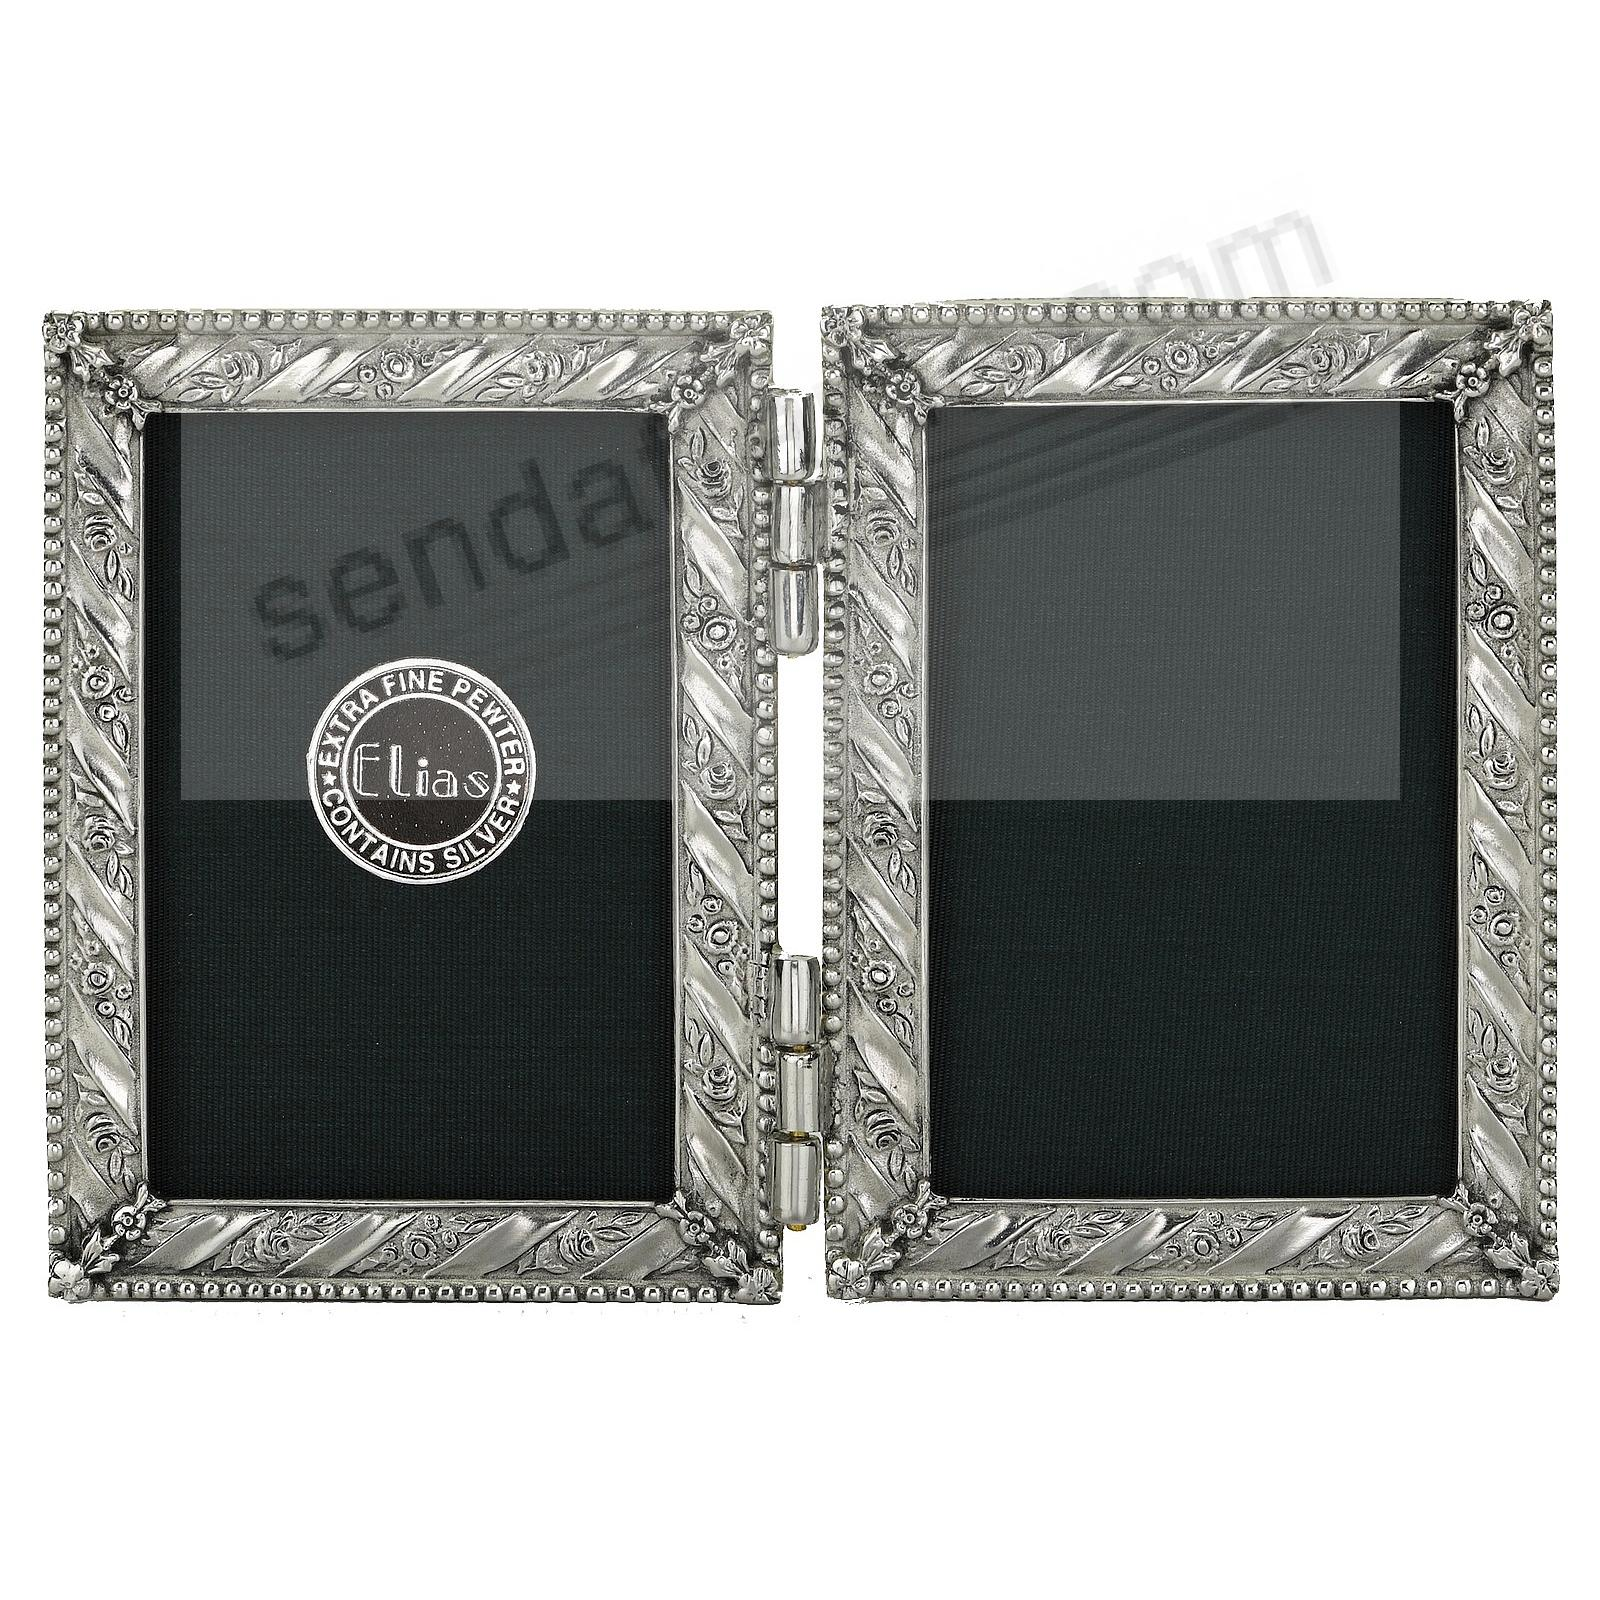 GIFTWRAP luxe fine pewter DOUBLE HINGED 2x3 by Elias Artmetal®